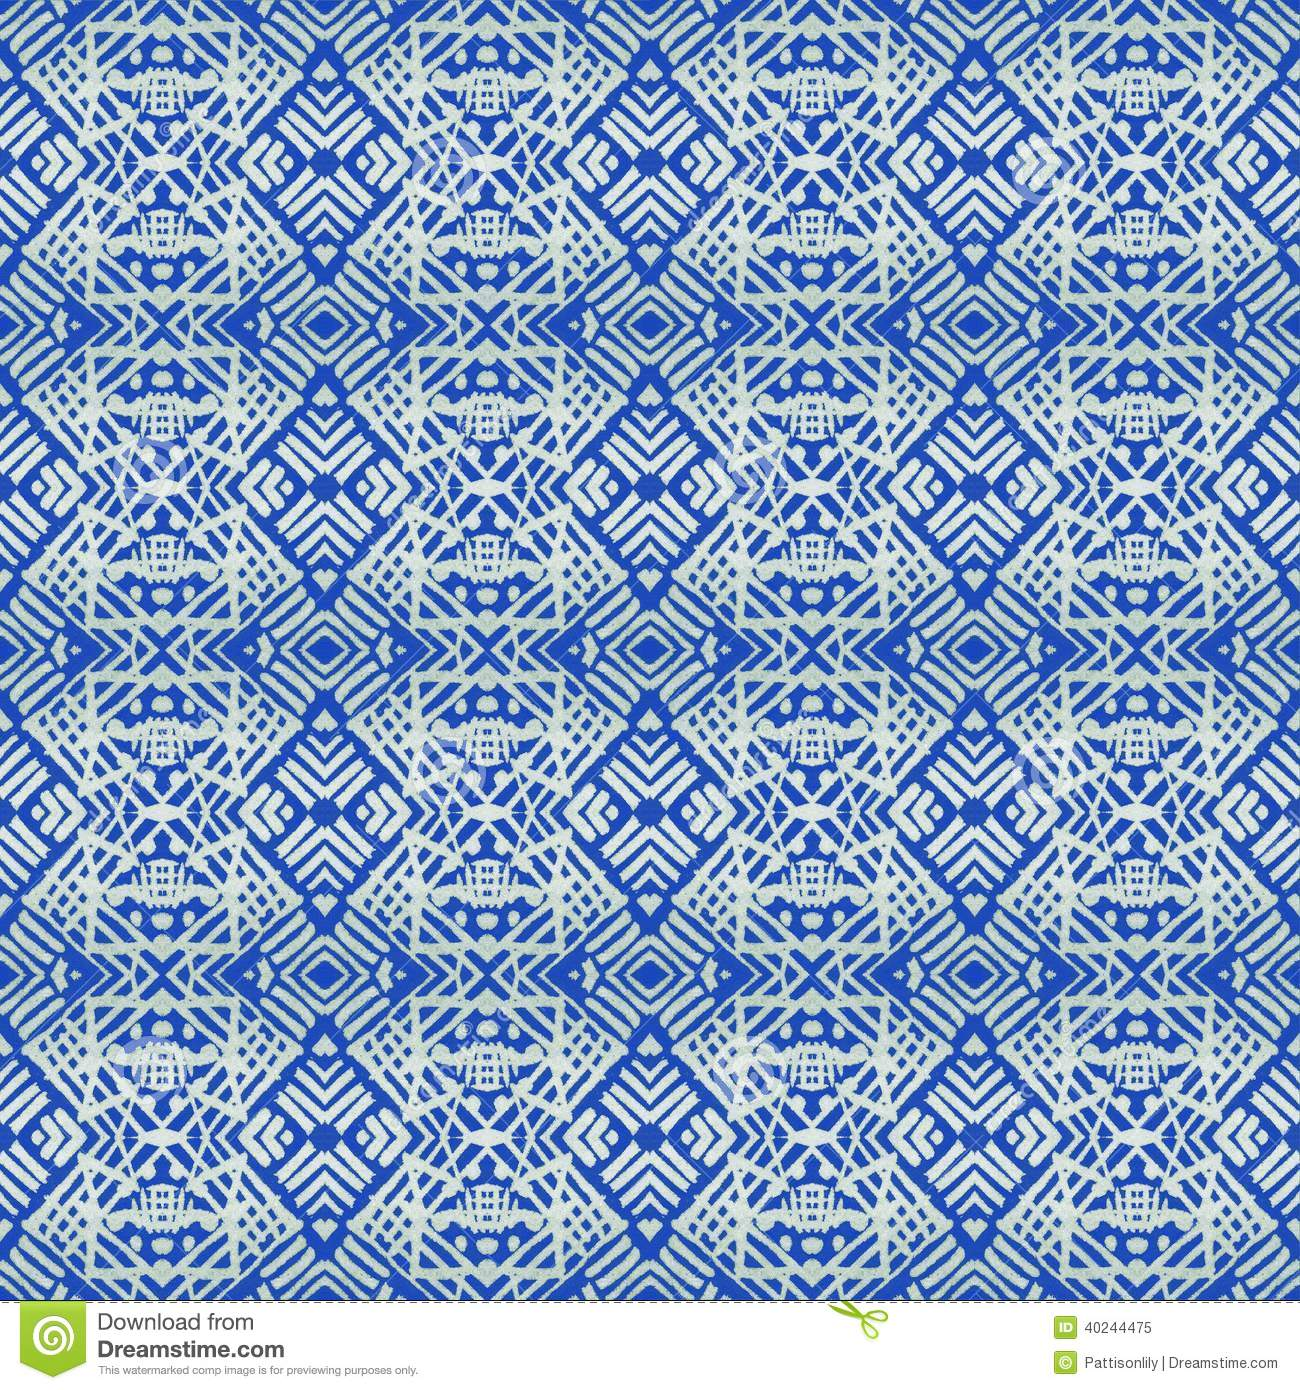 ... tribal pattern inspired by African, tribal and indigo batik textiles